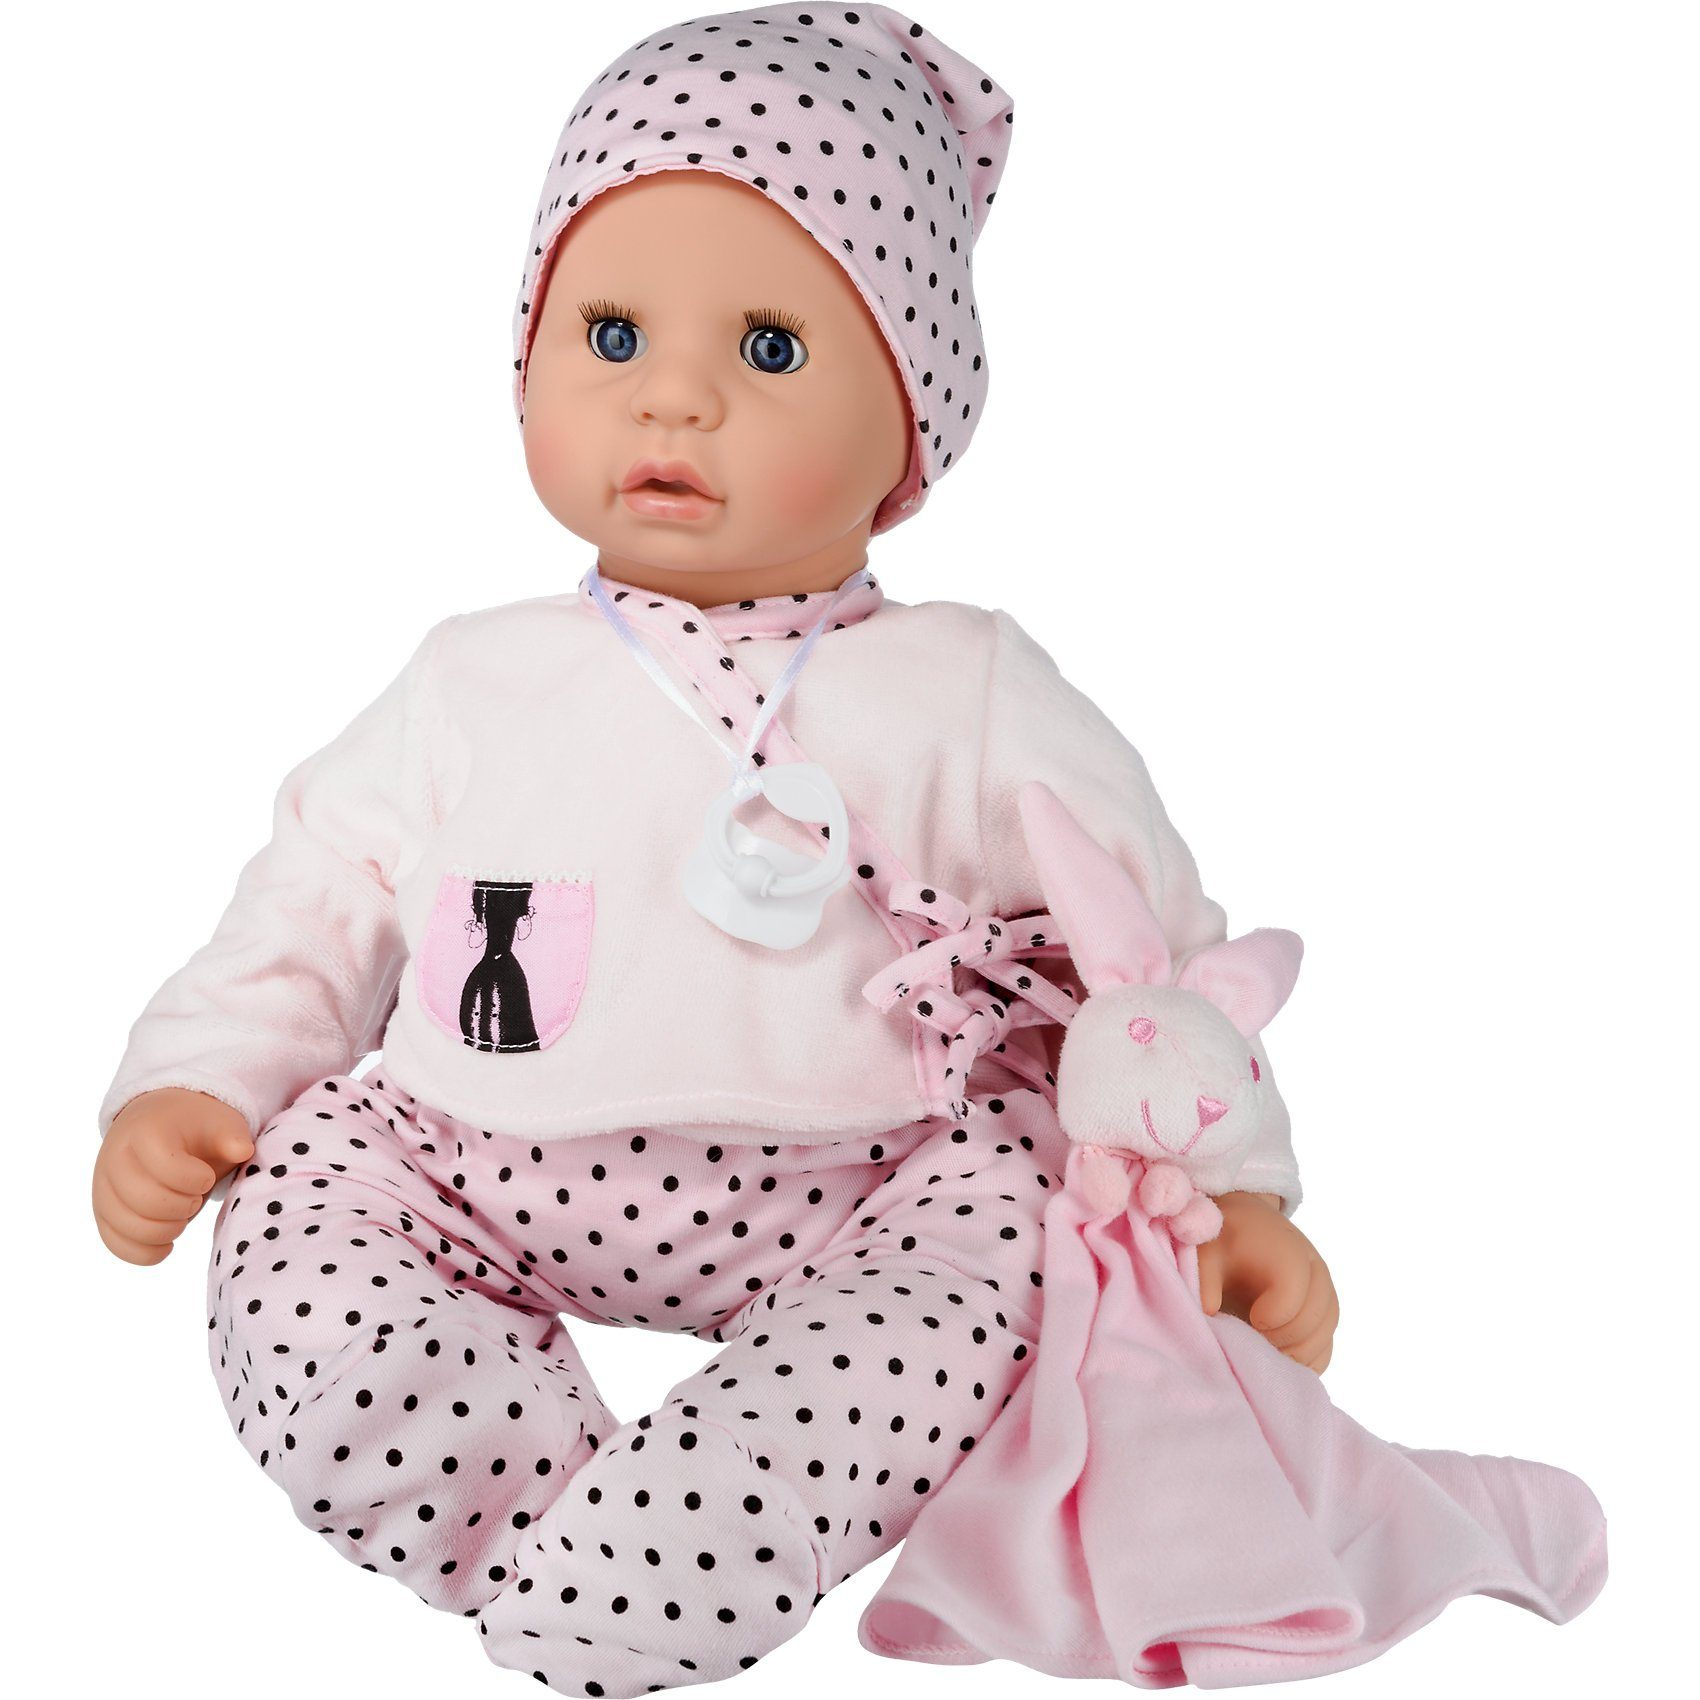 Götz Puppe Cookie ladies & spots, 6tlg, 48 cm